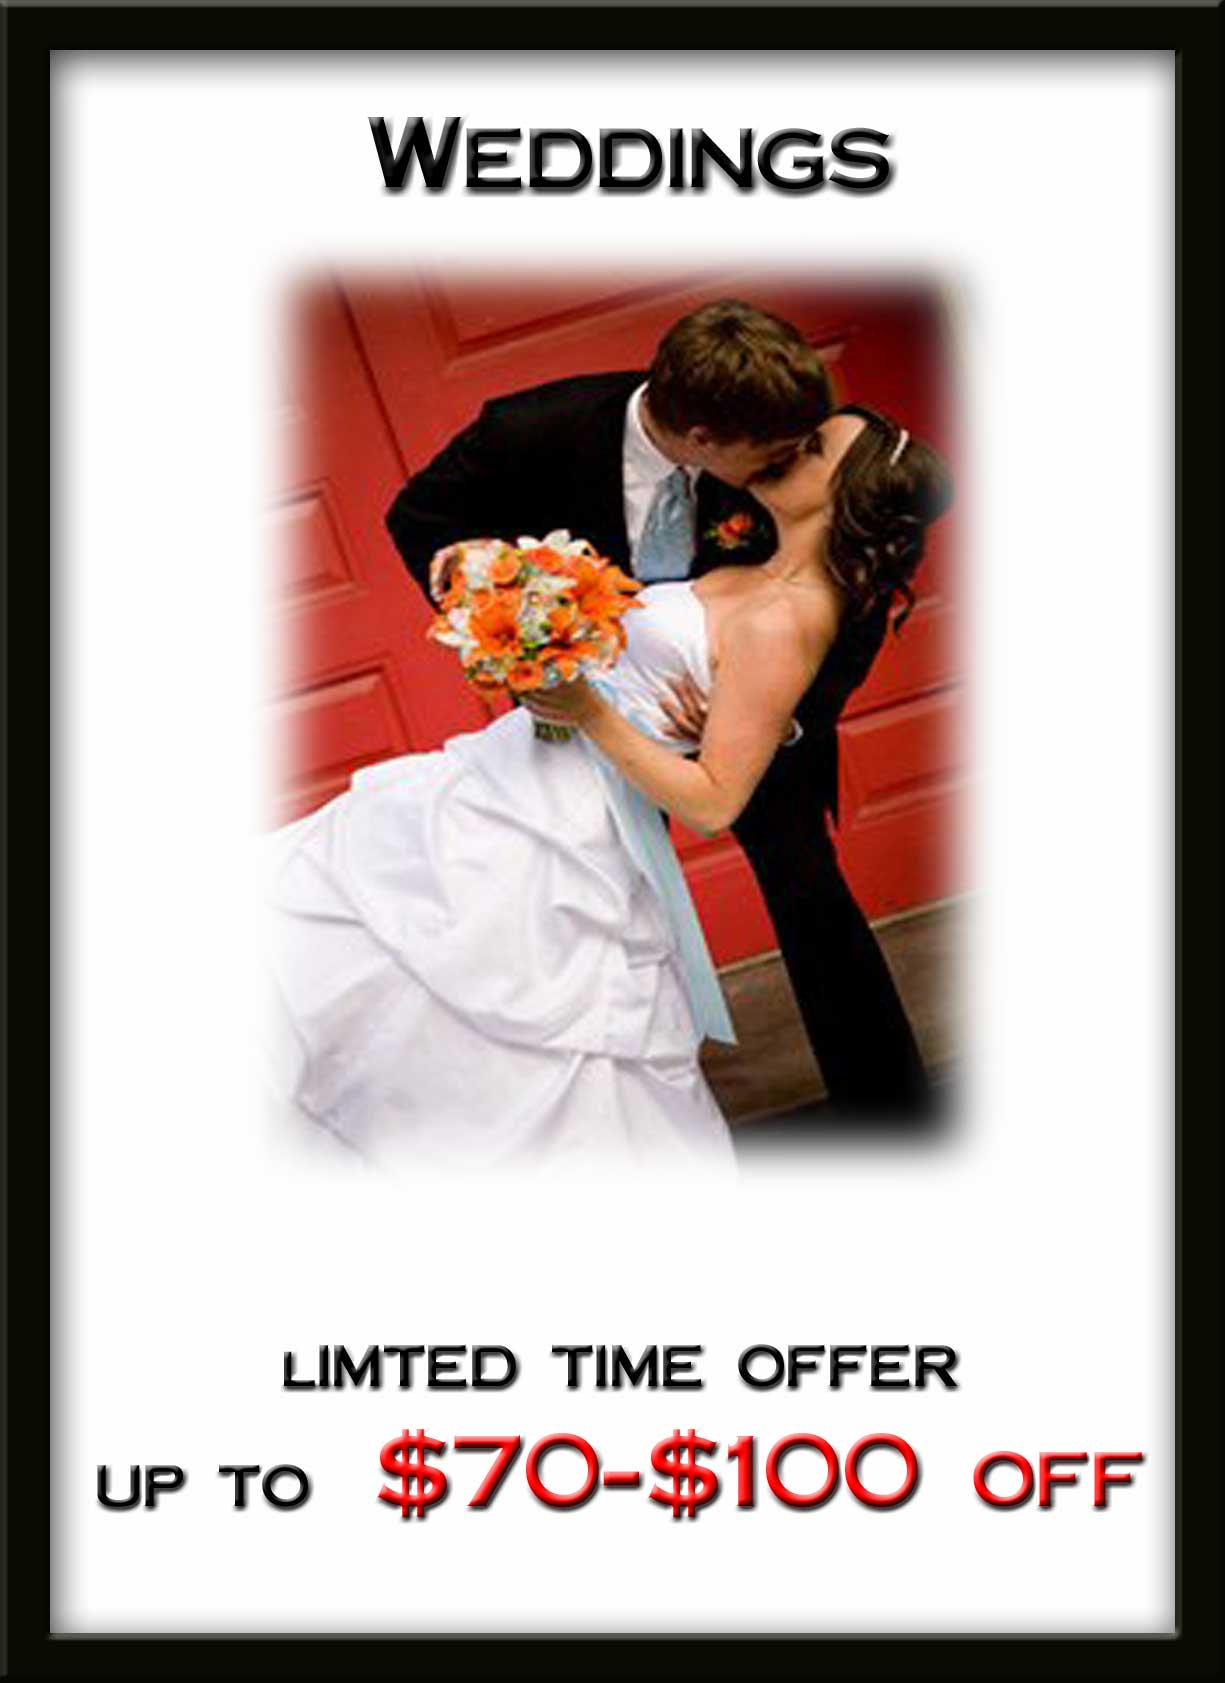 Wedding Specials - Tuxedos and Formal Wear - Lowell, MA